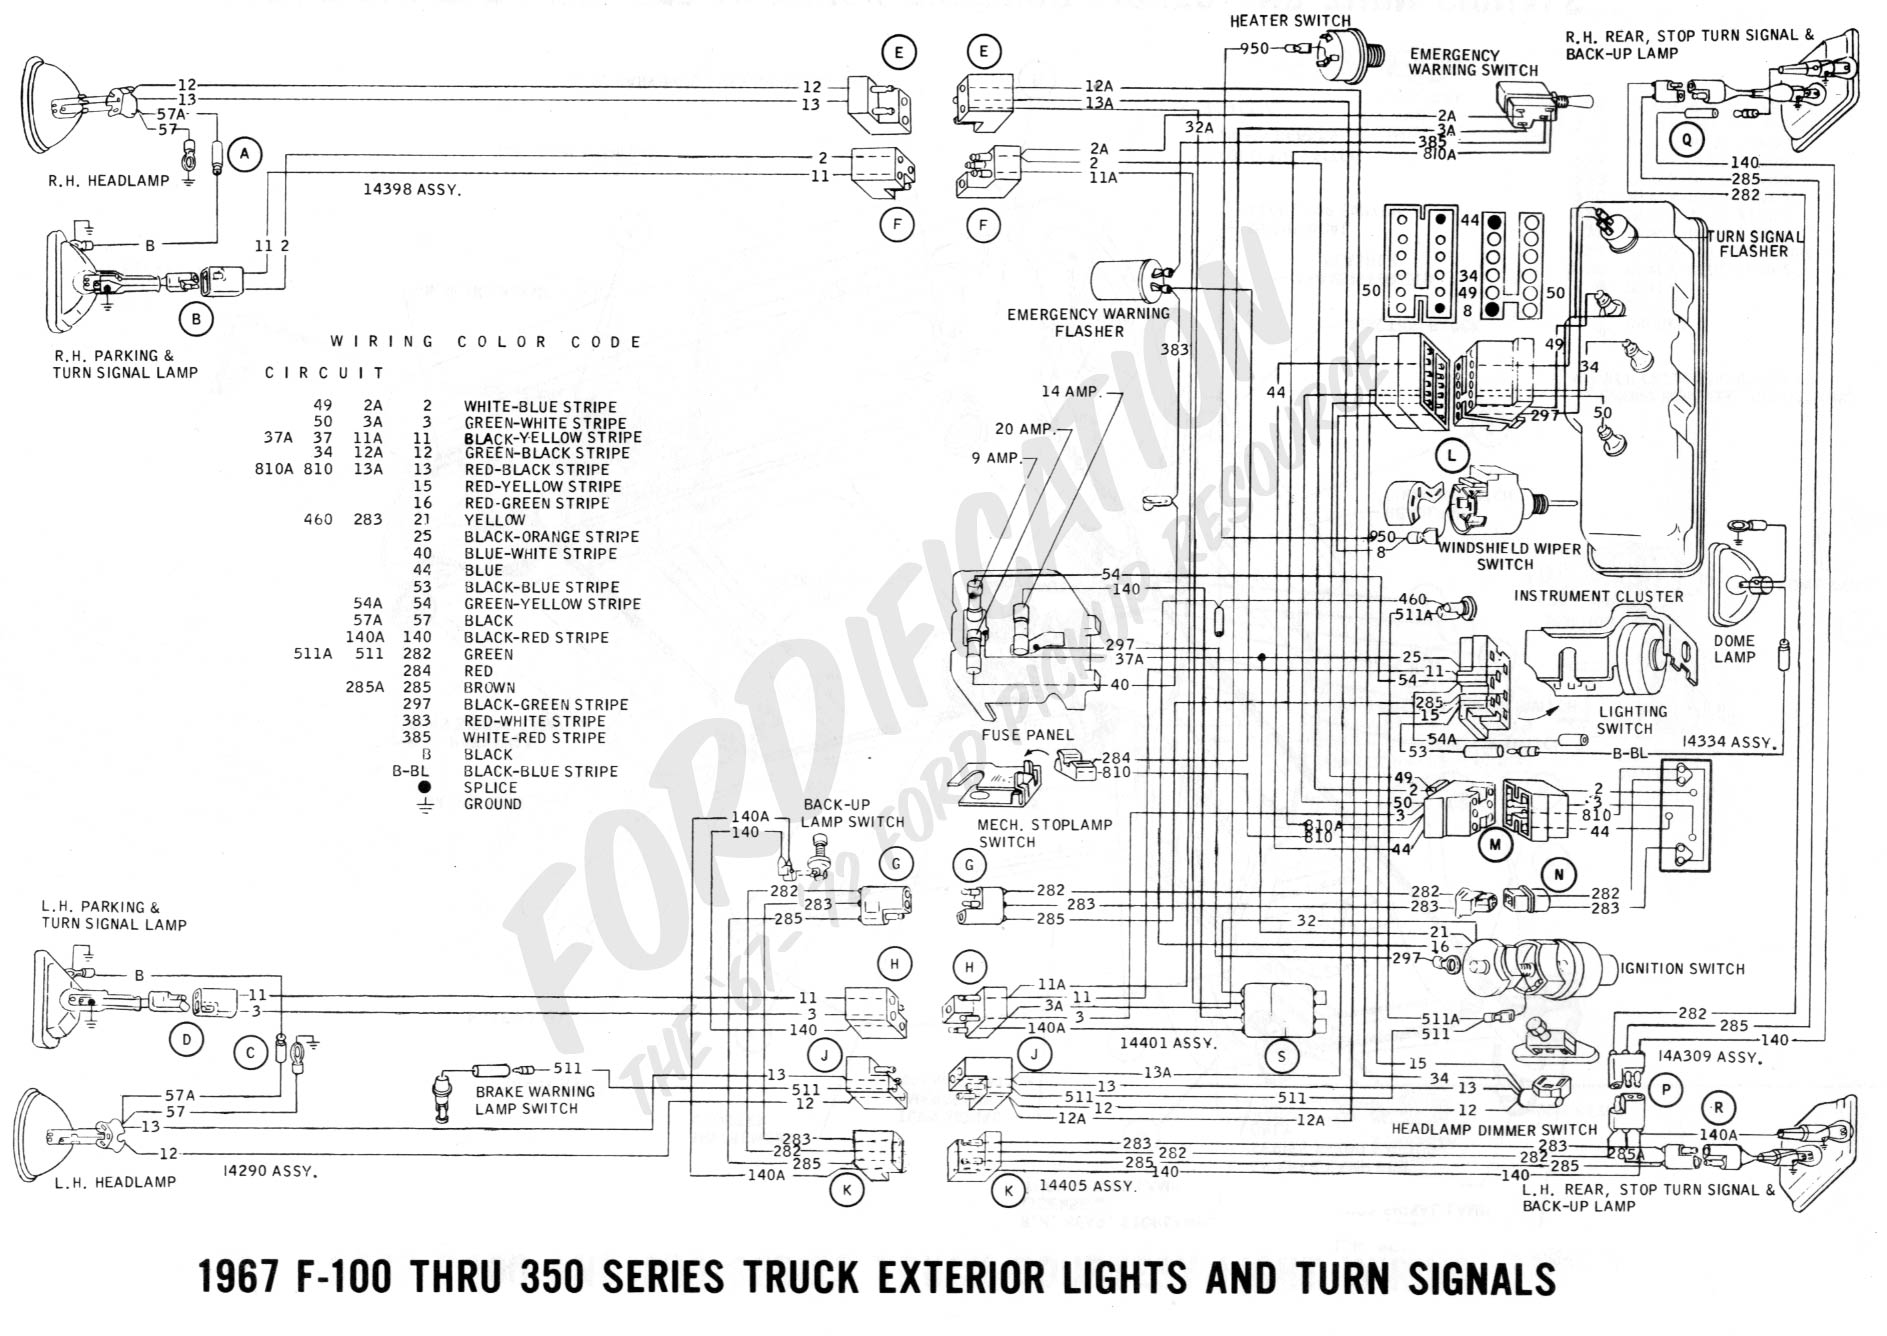 ford f fuse panel diagram image 2001 ford f250 4x4 wiring diagram 2001 discover your wiring on 2001 ford f250 fuse panel